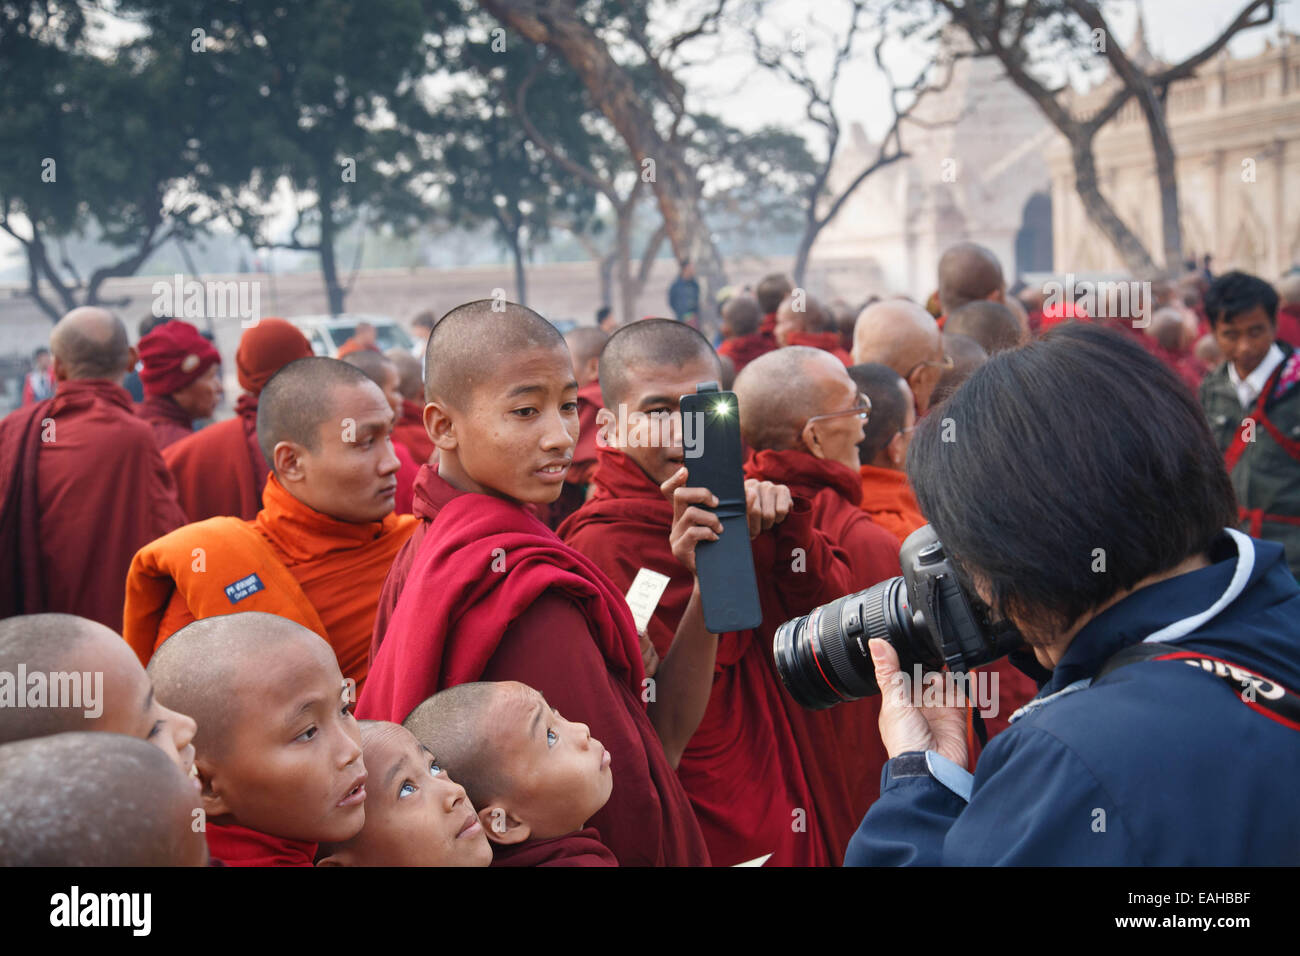 Monks at the Ananda pagoda festivals in Bagan - Stock Image